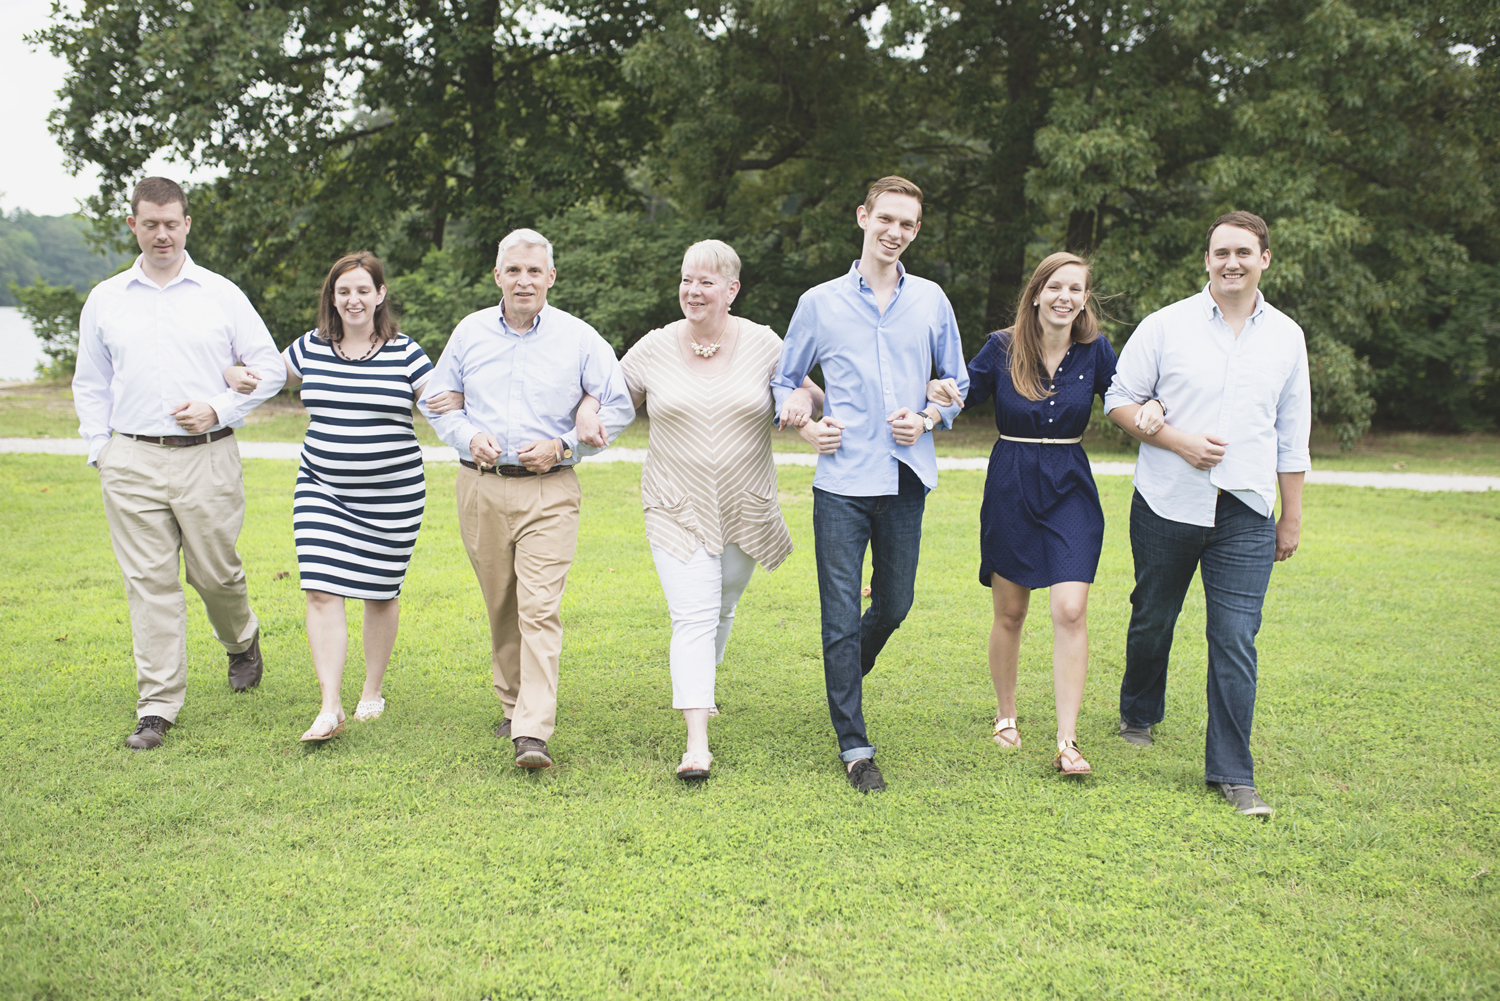 Lions Bridge Family Photos | Newport News, Virginia | Blue, tan, and white family outfit ideas